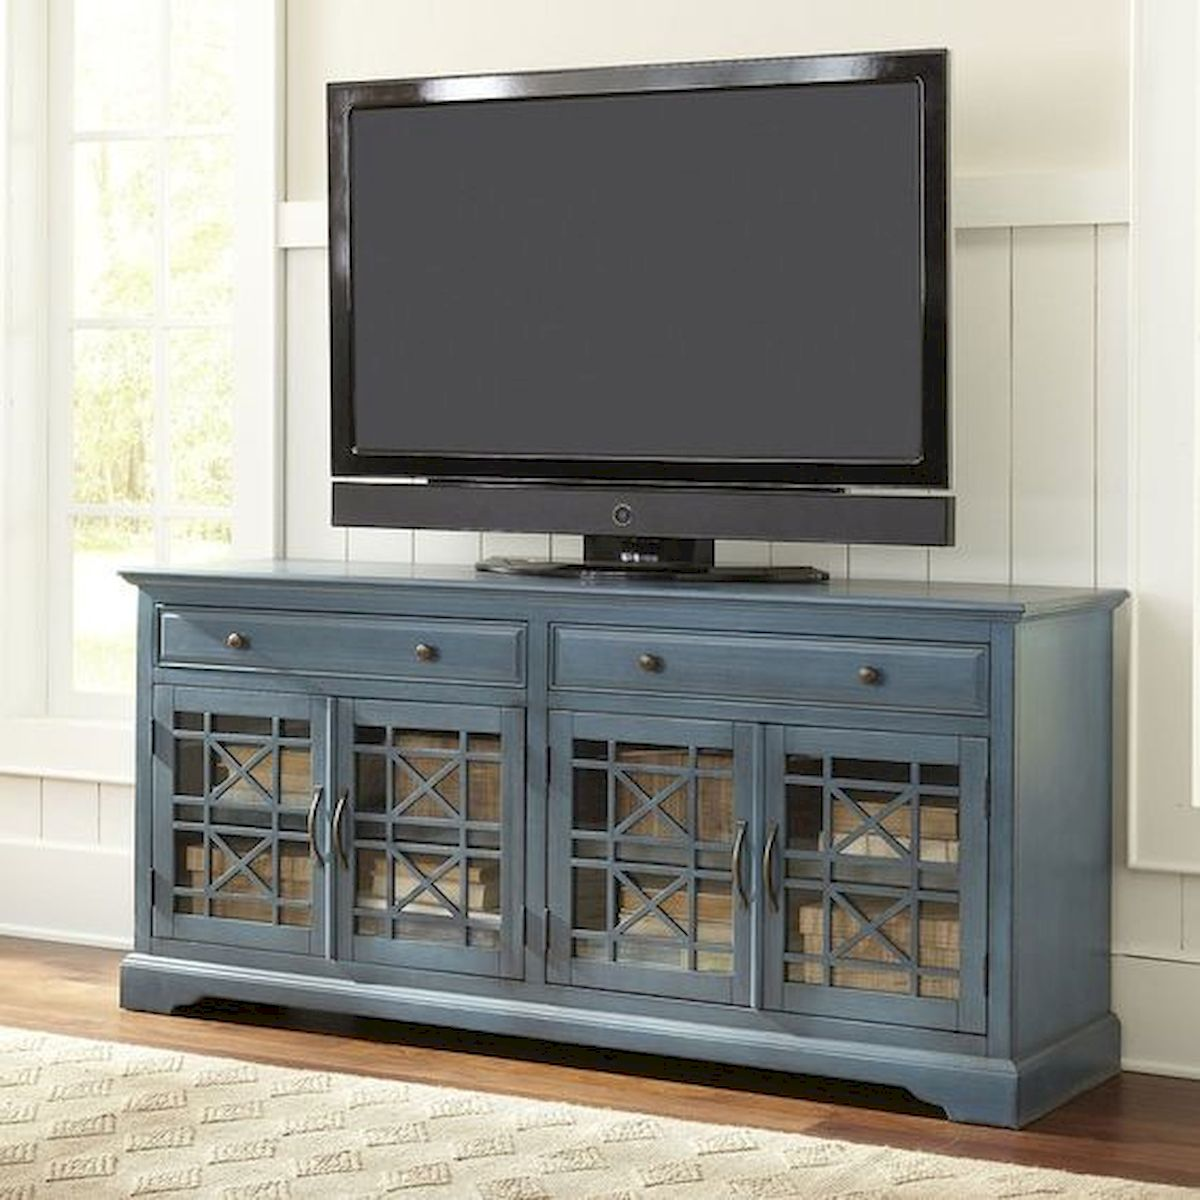 60 Beautiful Farmhouse TV Stand Design Ideas And Decor (37)